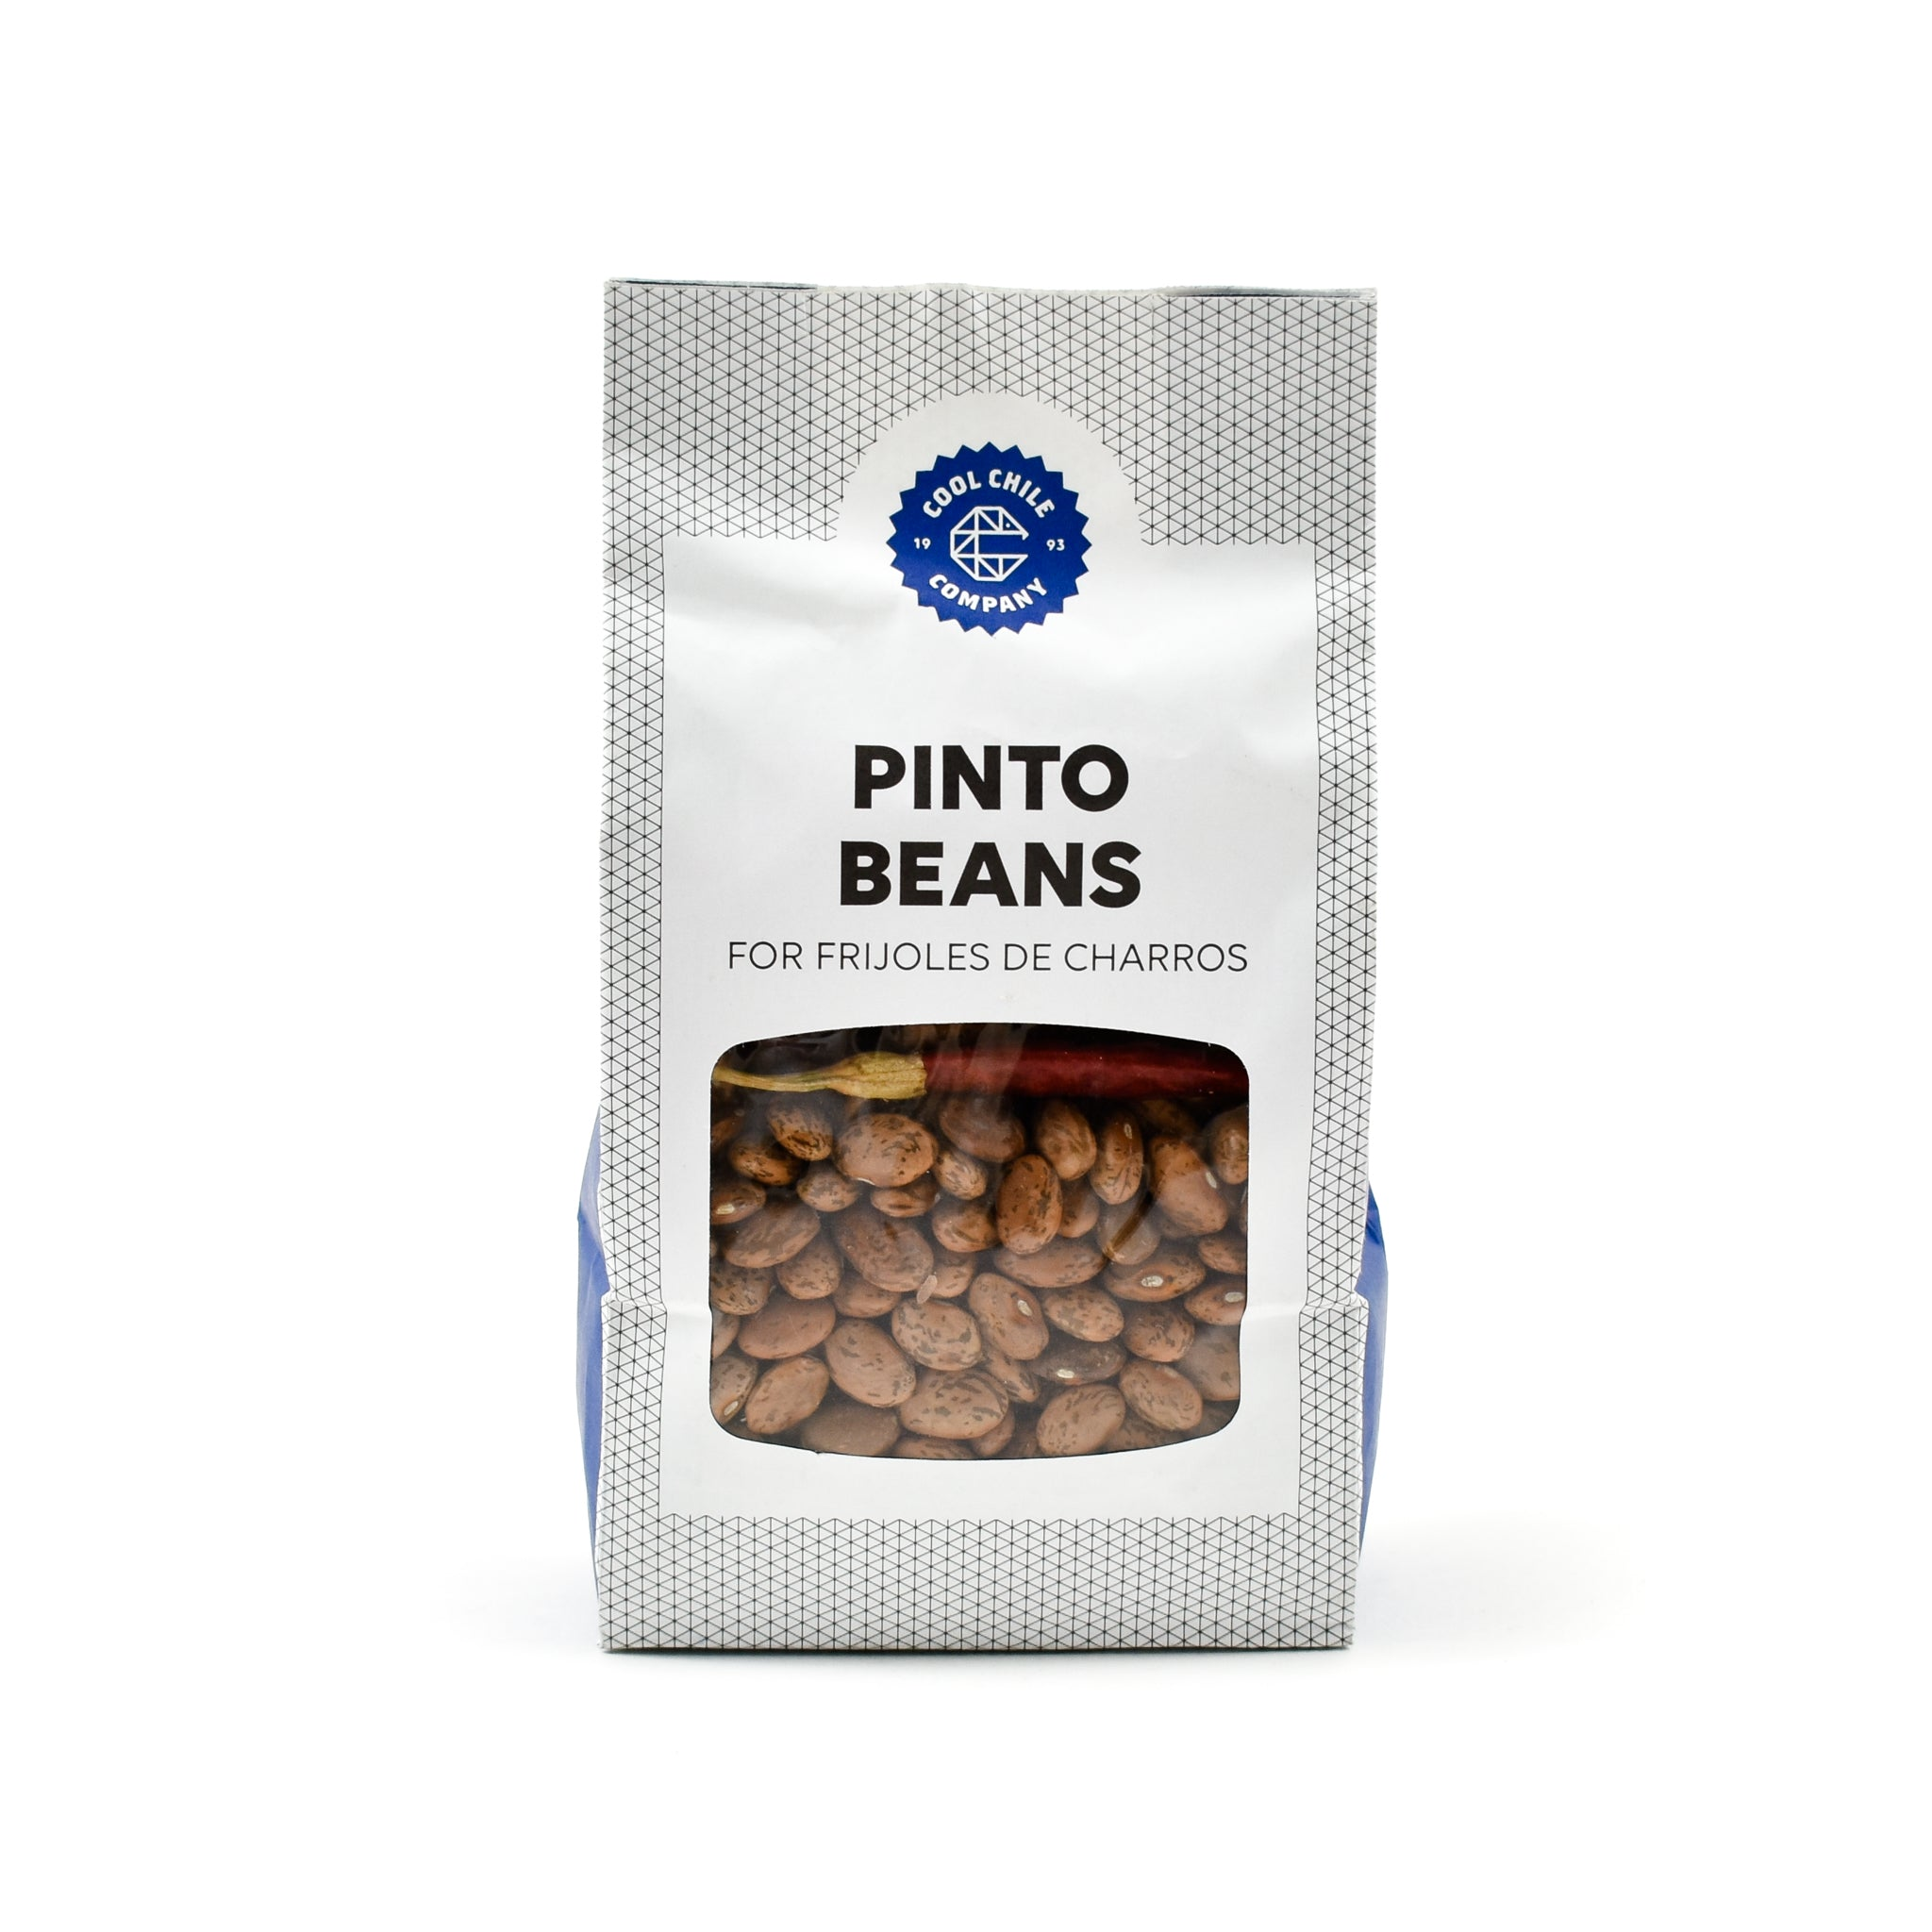 Pinto Beans - Cool Chile Cowboy Bean Kit 250g Ingredients Mexican Food